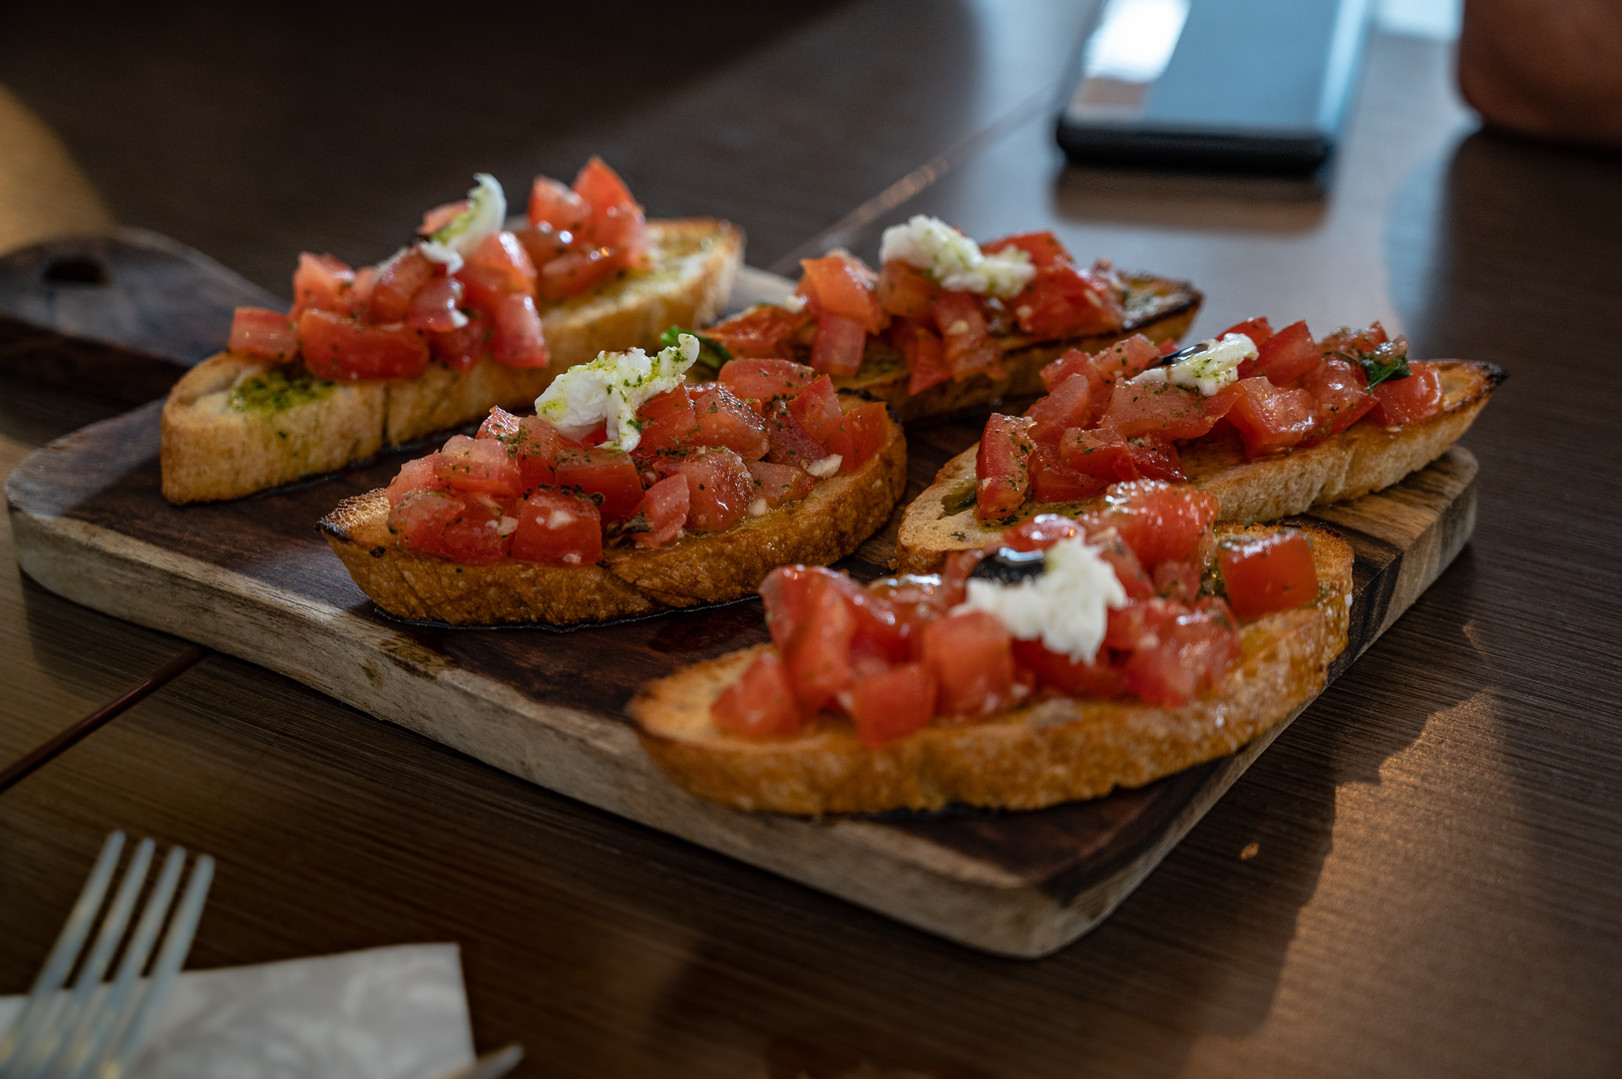 Bruschetta from Saggios Scratch Italian Kitchen in Albuquerque